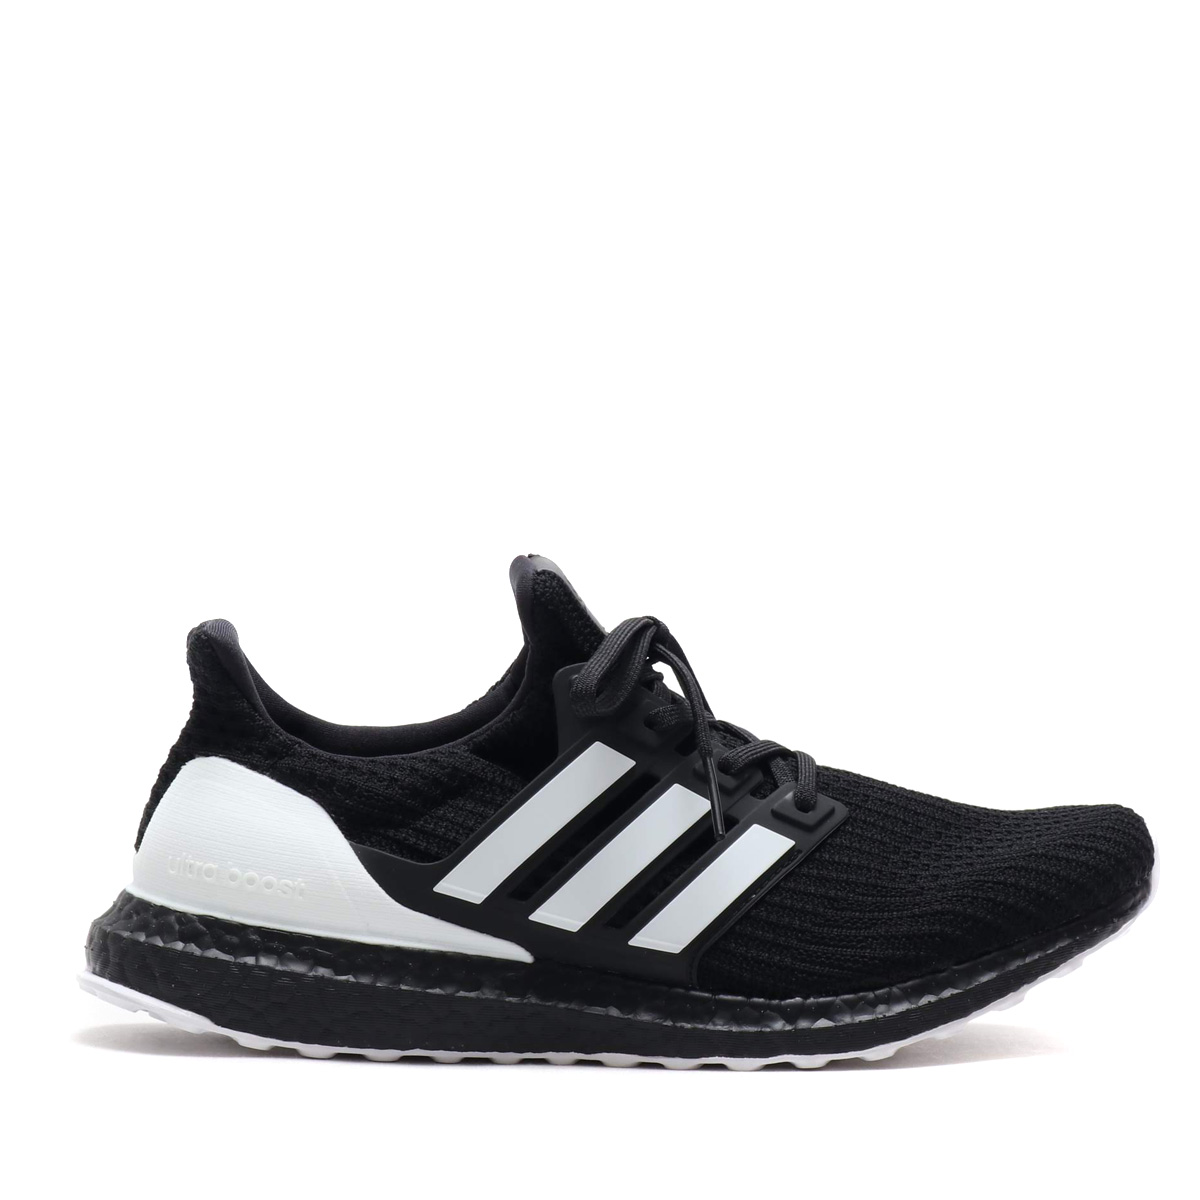 8dcbb9d59995d adidas UltraBOOST (Adidas ultra boost) CORE BLACK RUNNING WHITE CARBON  18FW-I